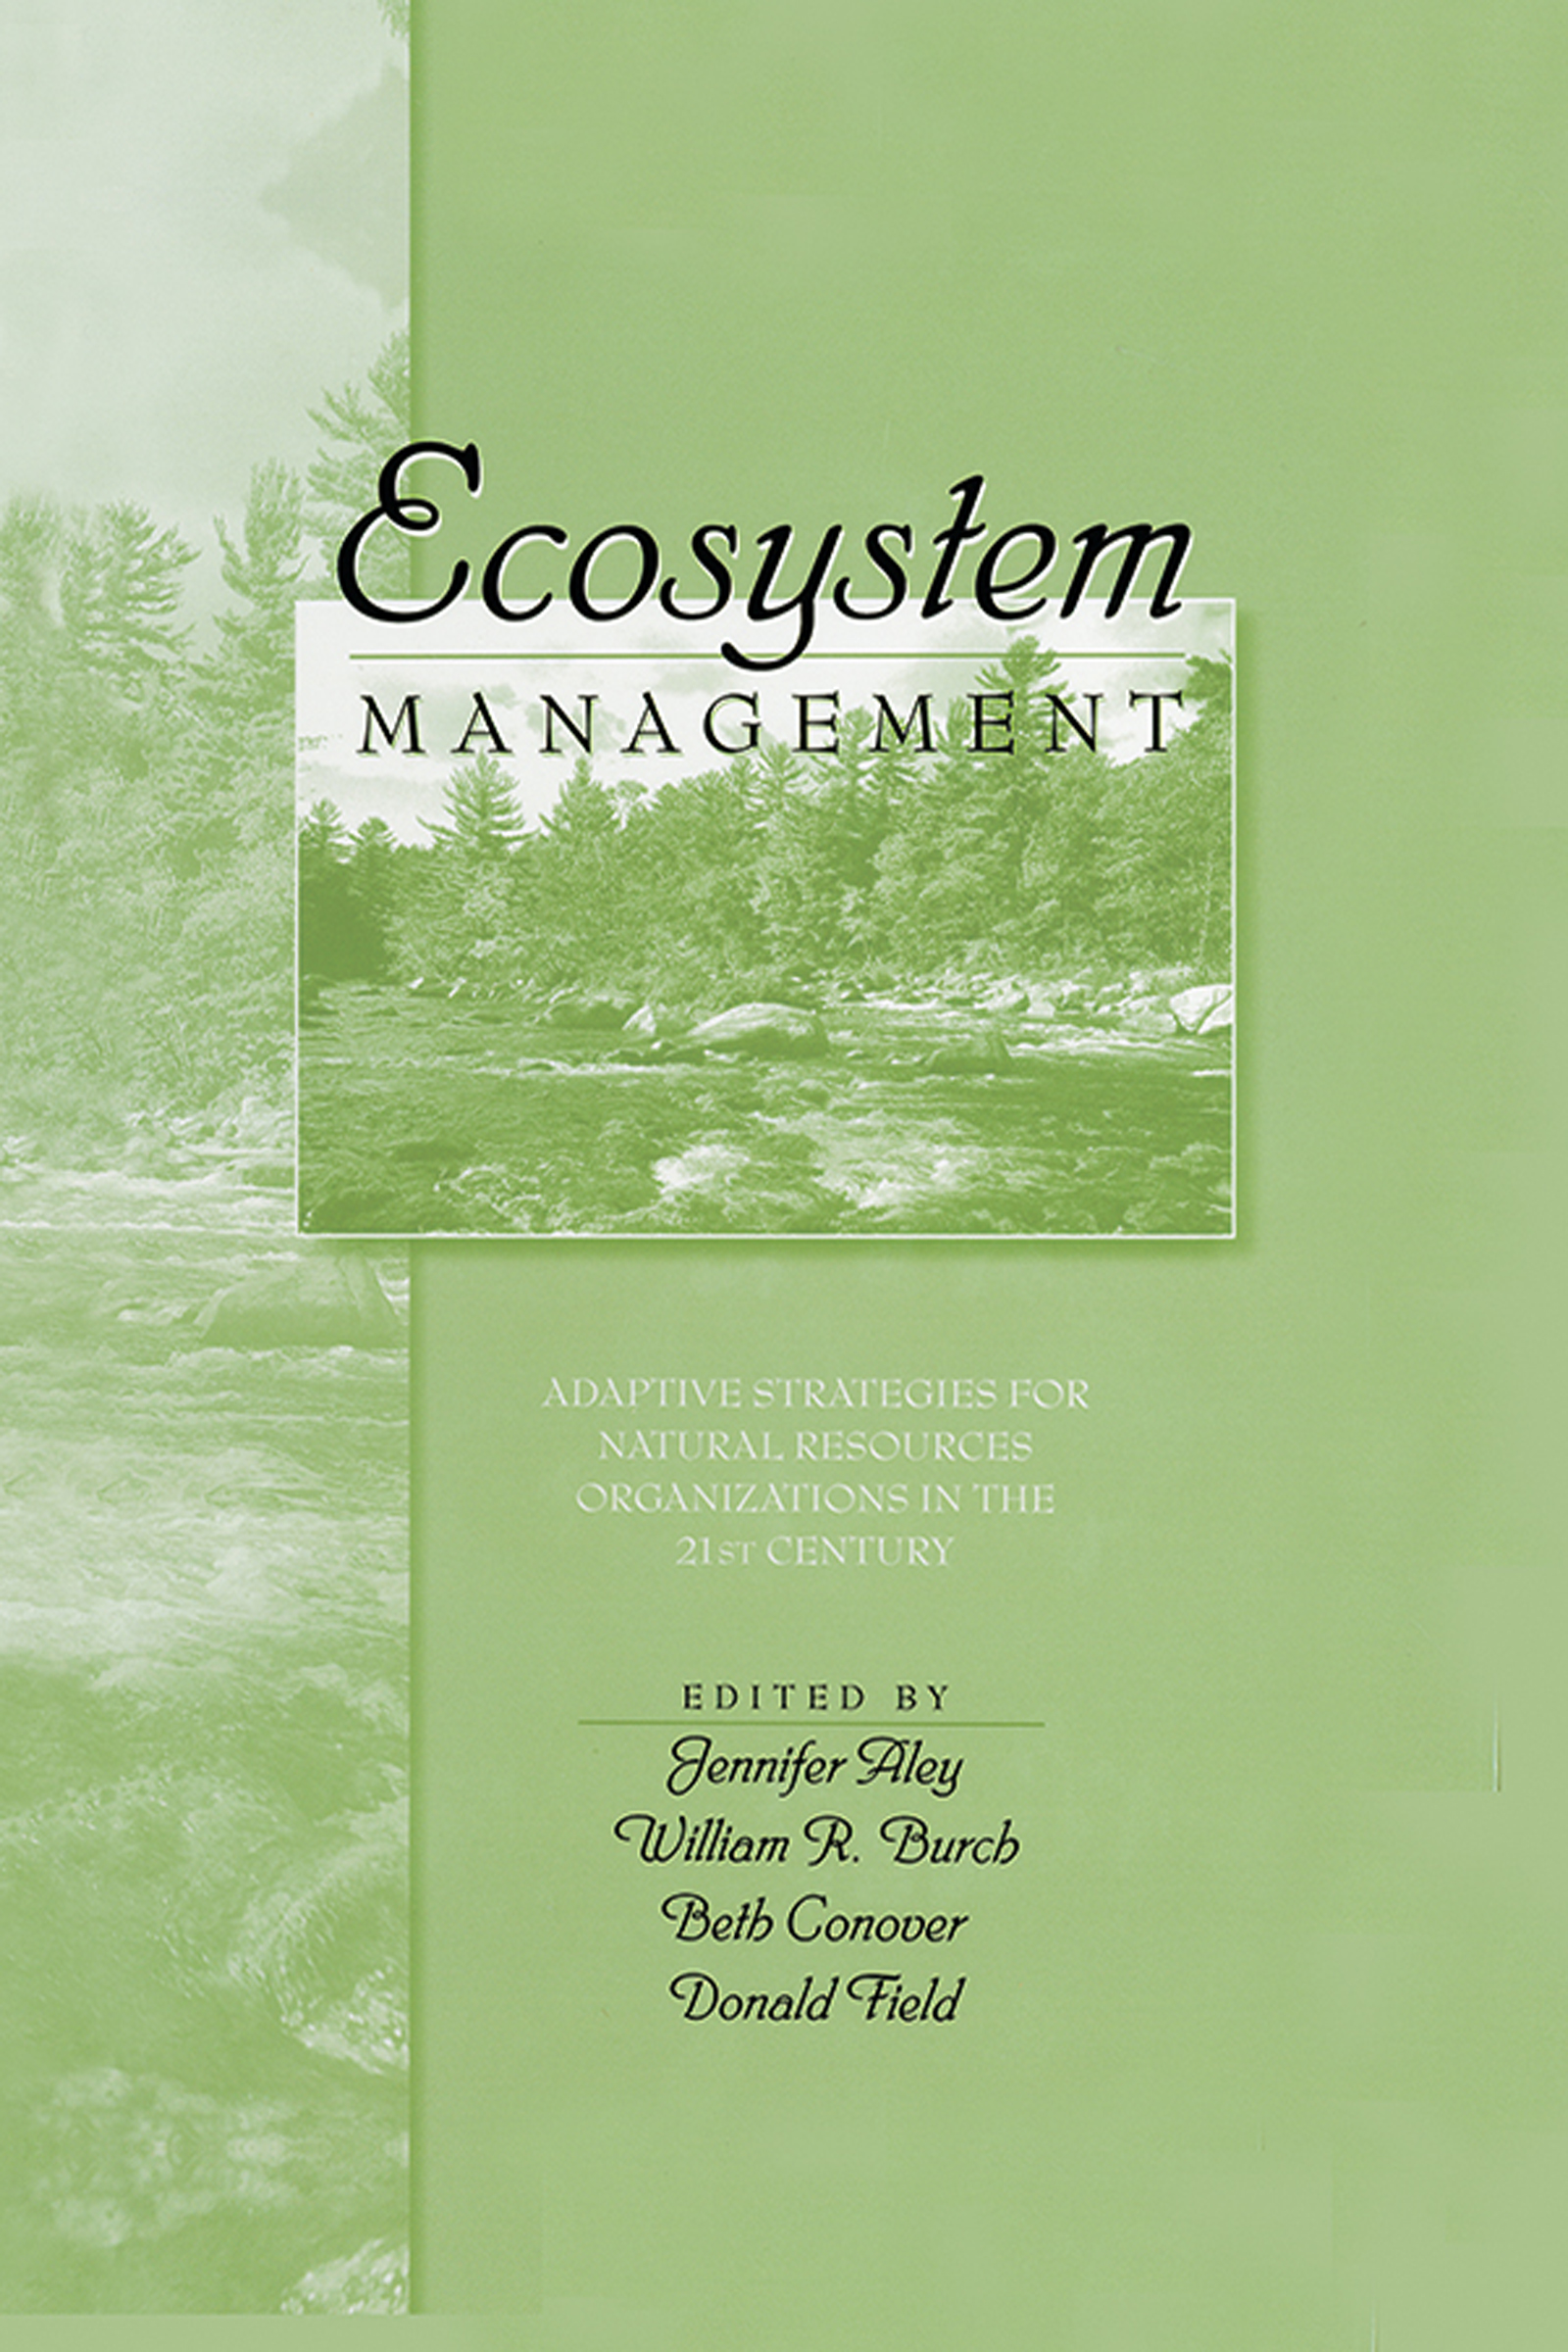 Ecosystem Management: A New Perspective for National Forests and Grasslands                            1